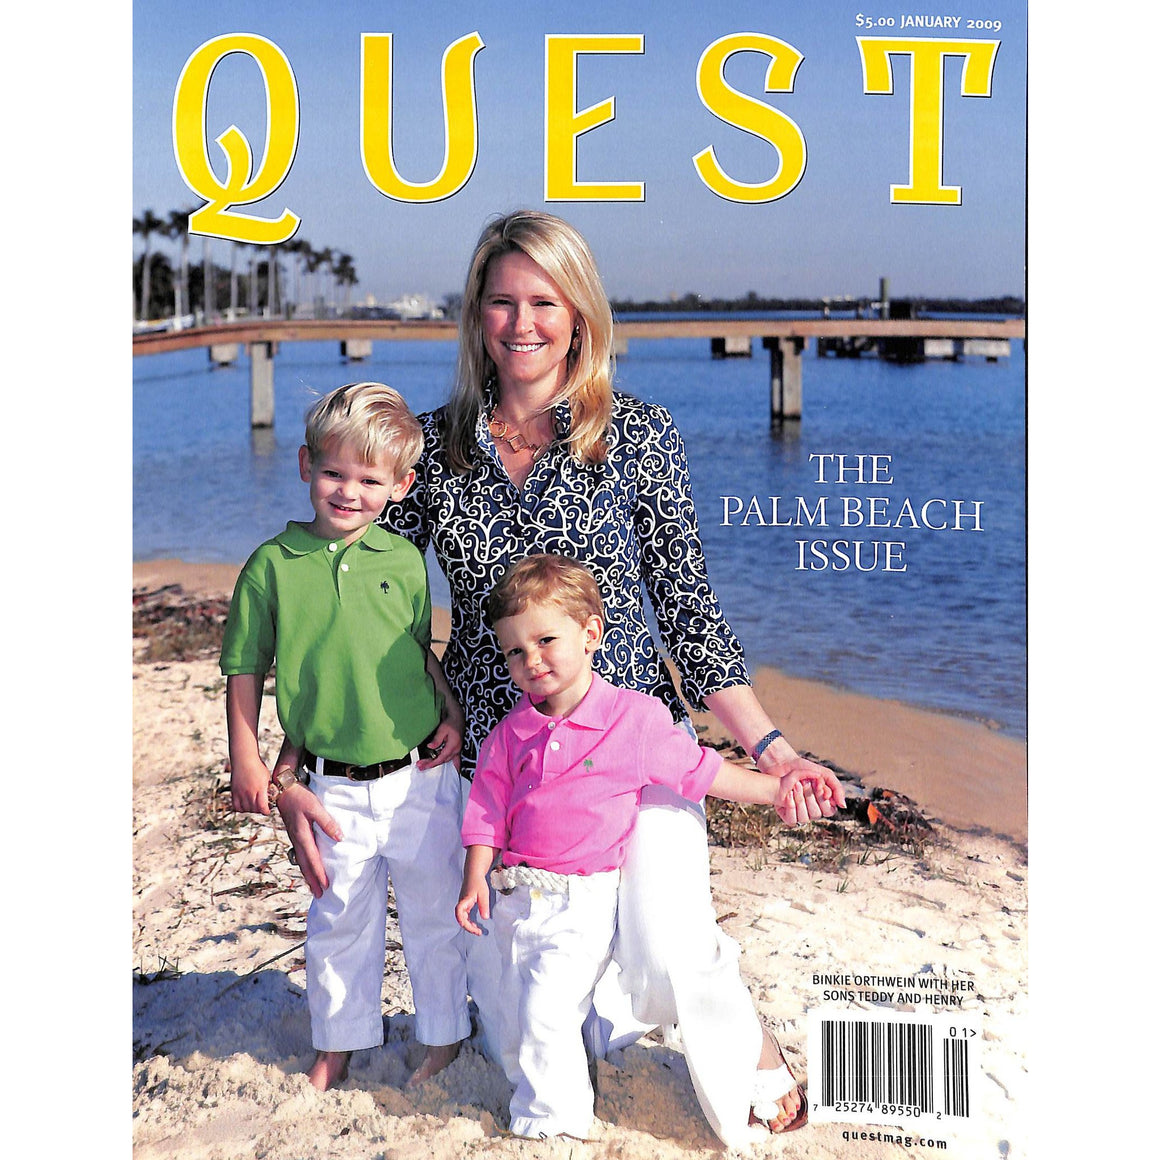 Quest: The Palm Beach Issue